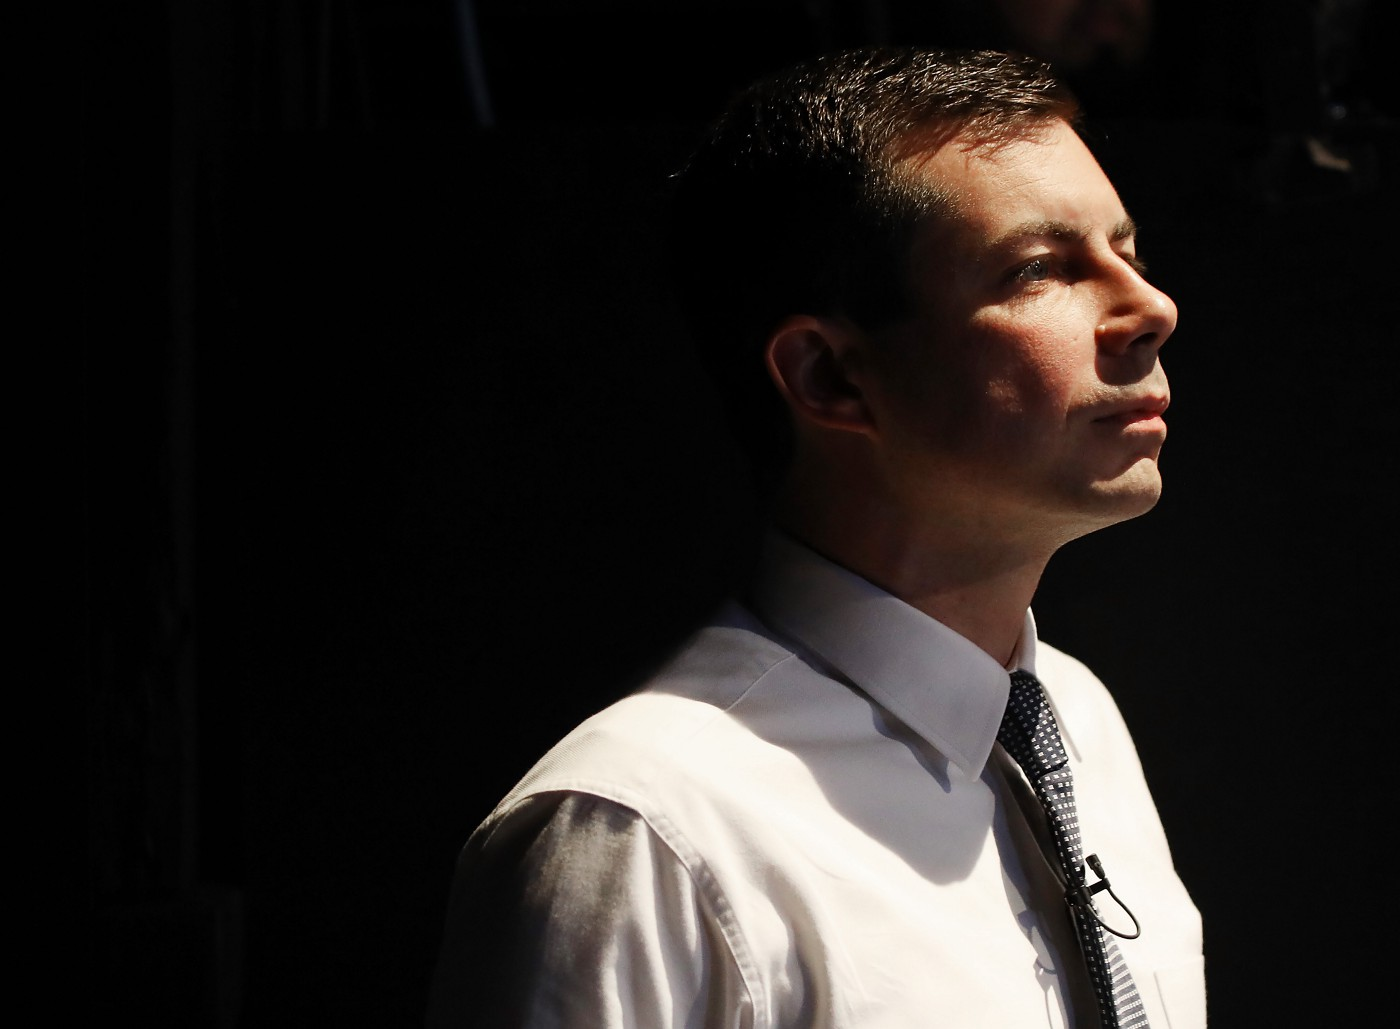 Democratic presidential candidate Pete Buttigieg waits to speak on Latino issues at Cal State LA on November 17, 2019.